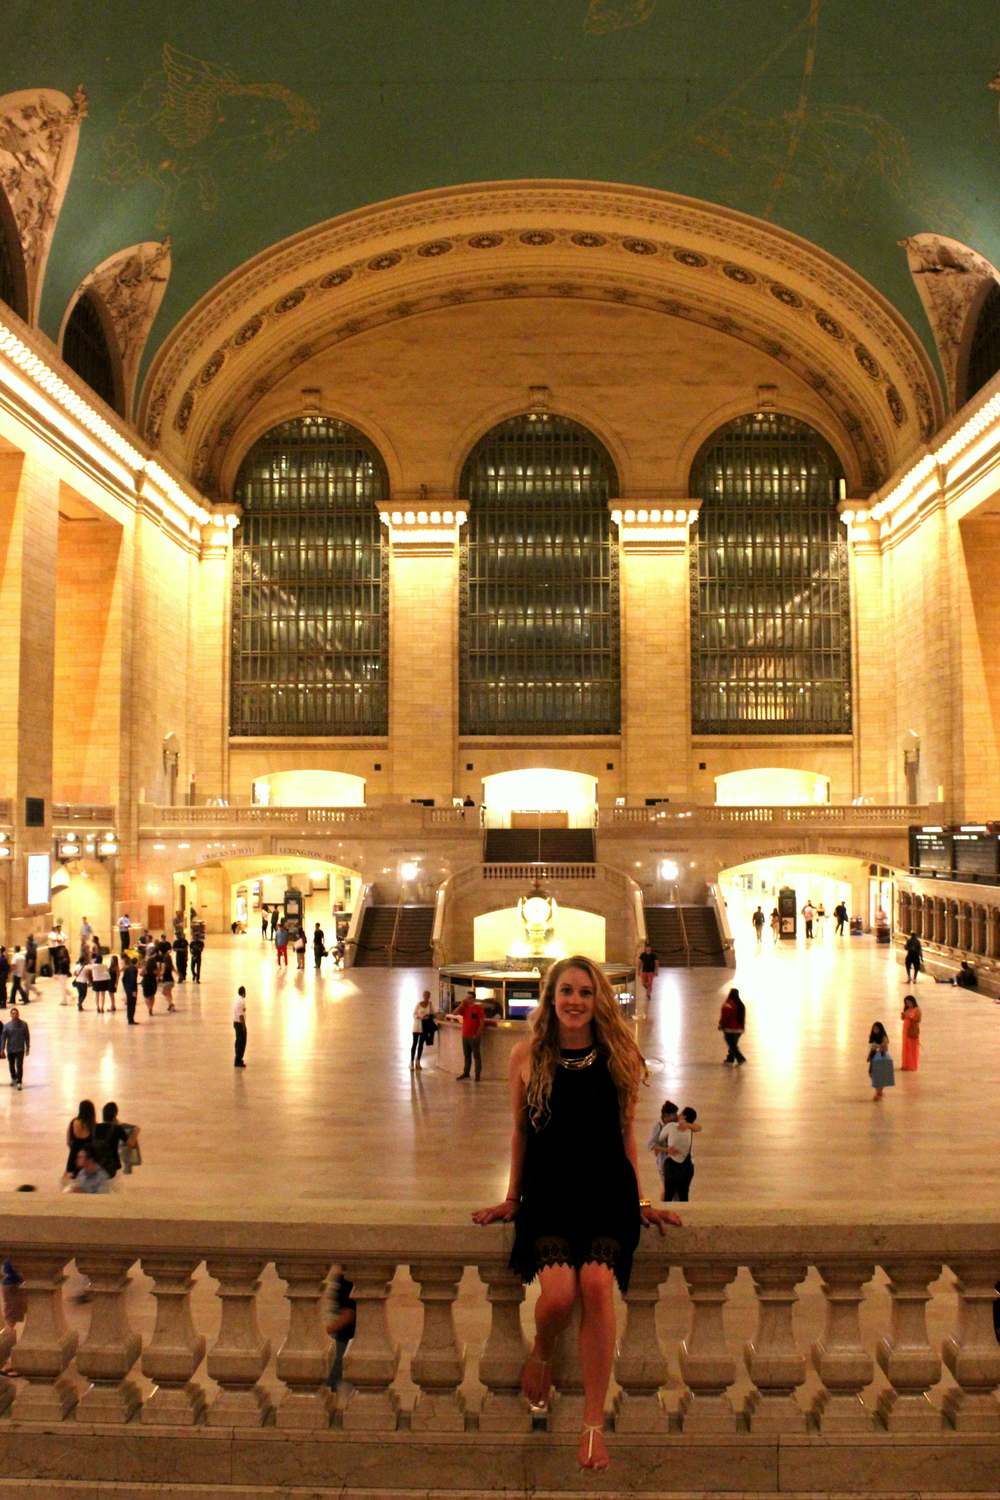 Obligatory late night (morning?) Grand Central shot